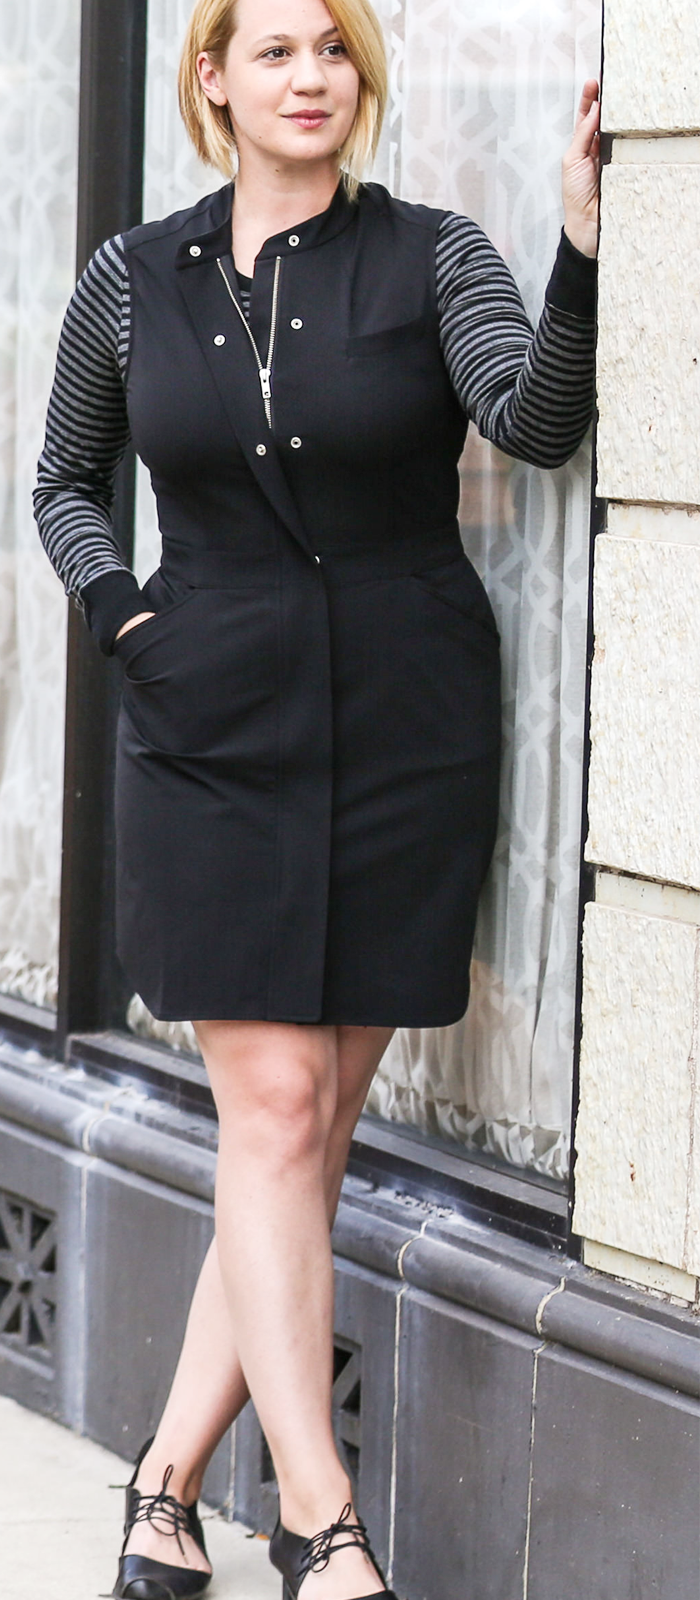 black dress with pockets and merino base layer